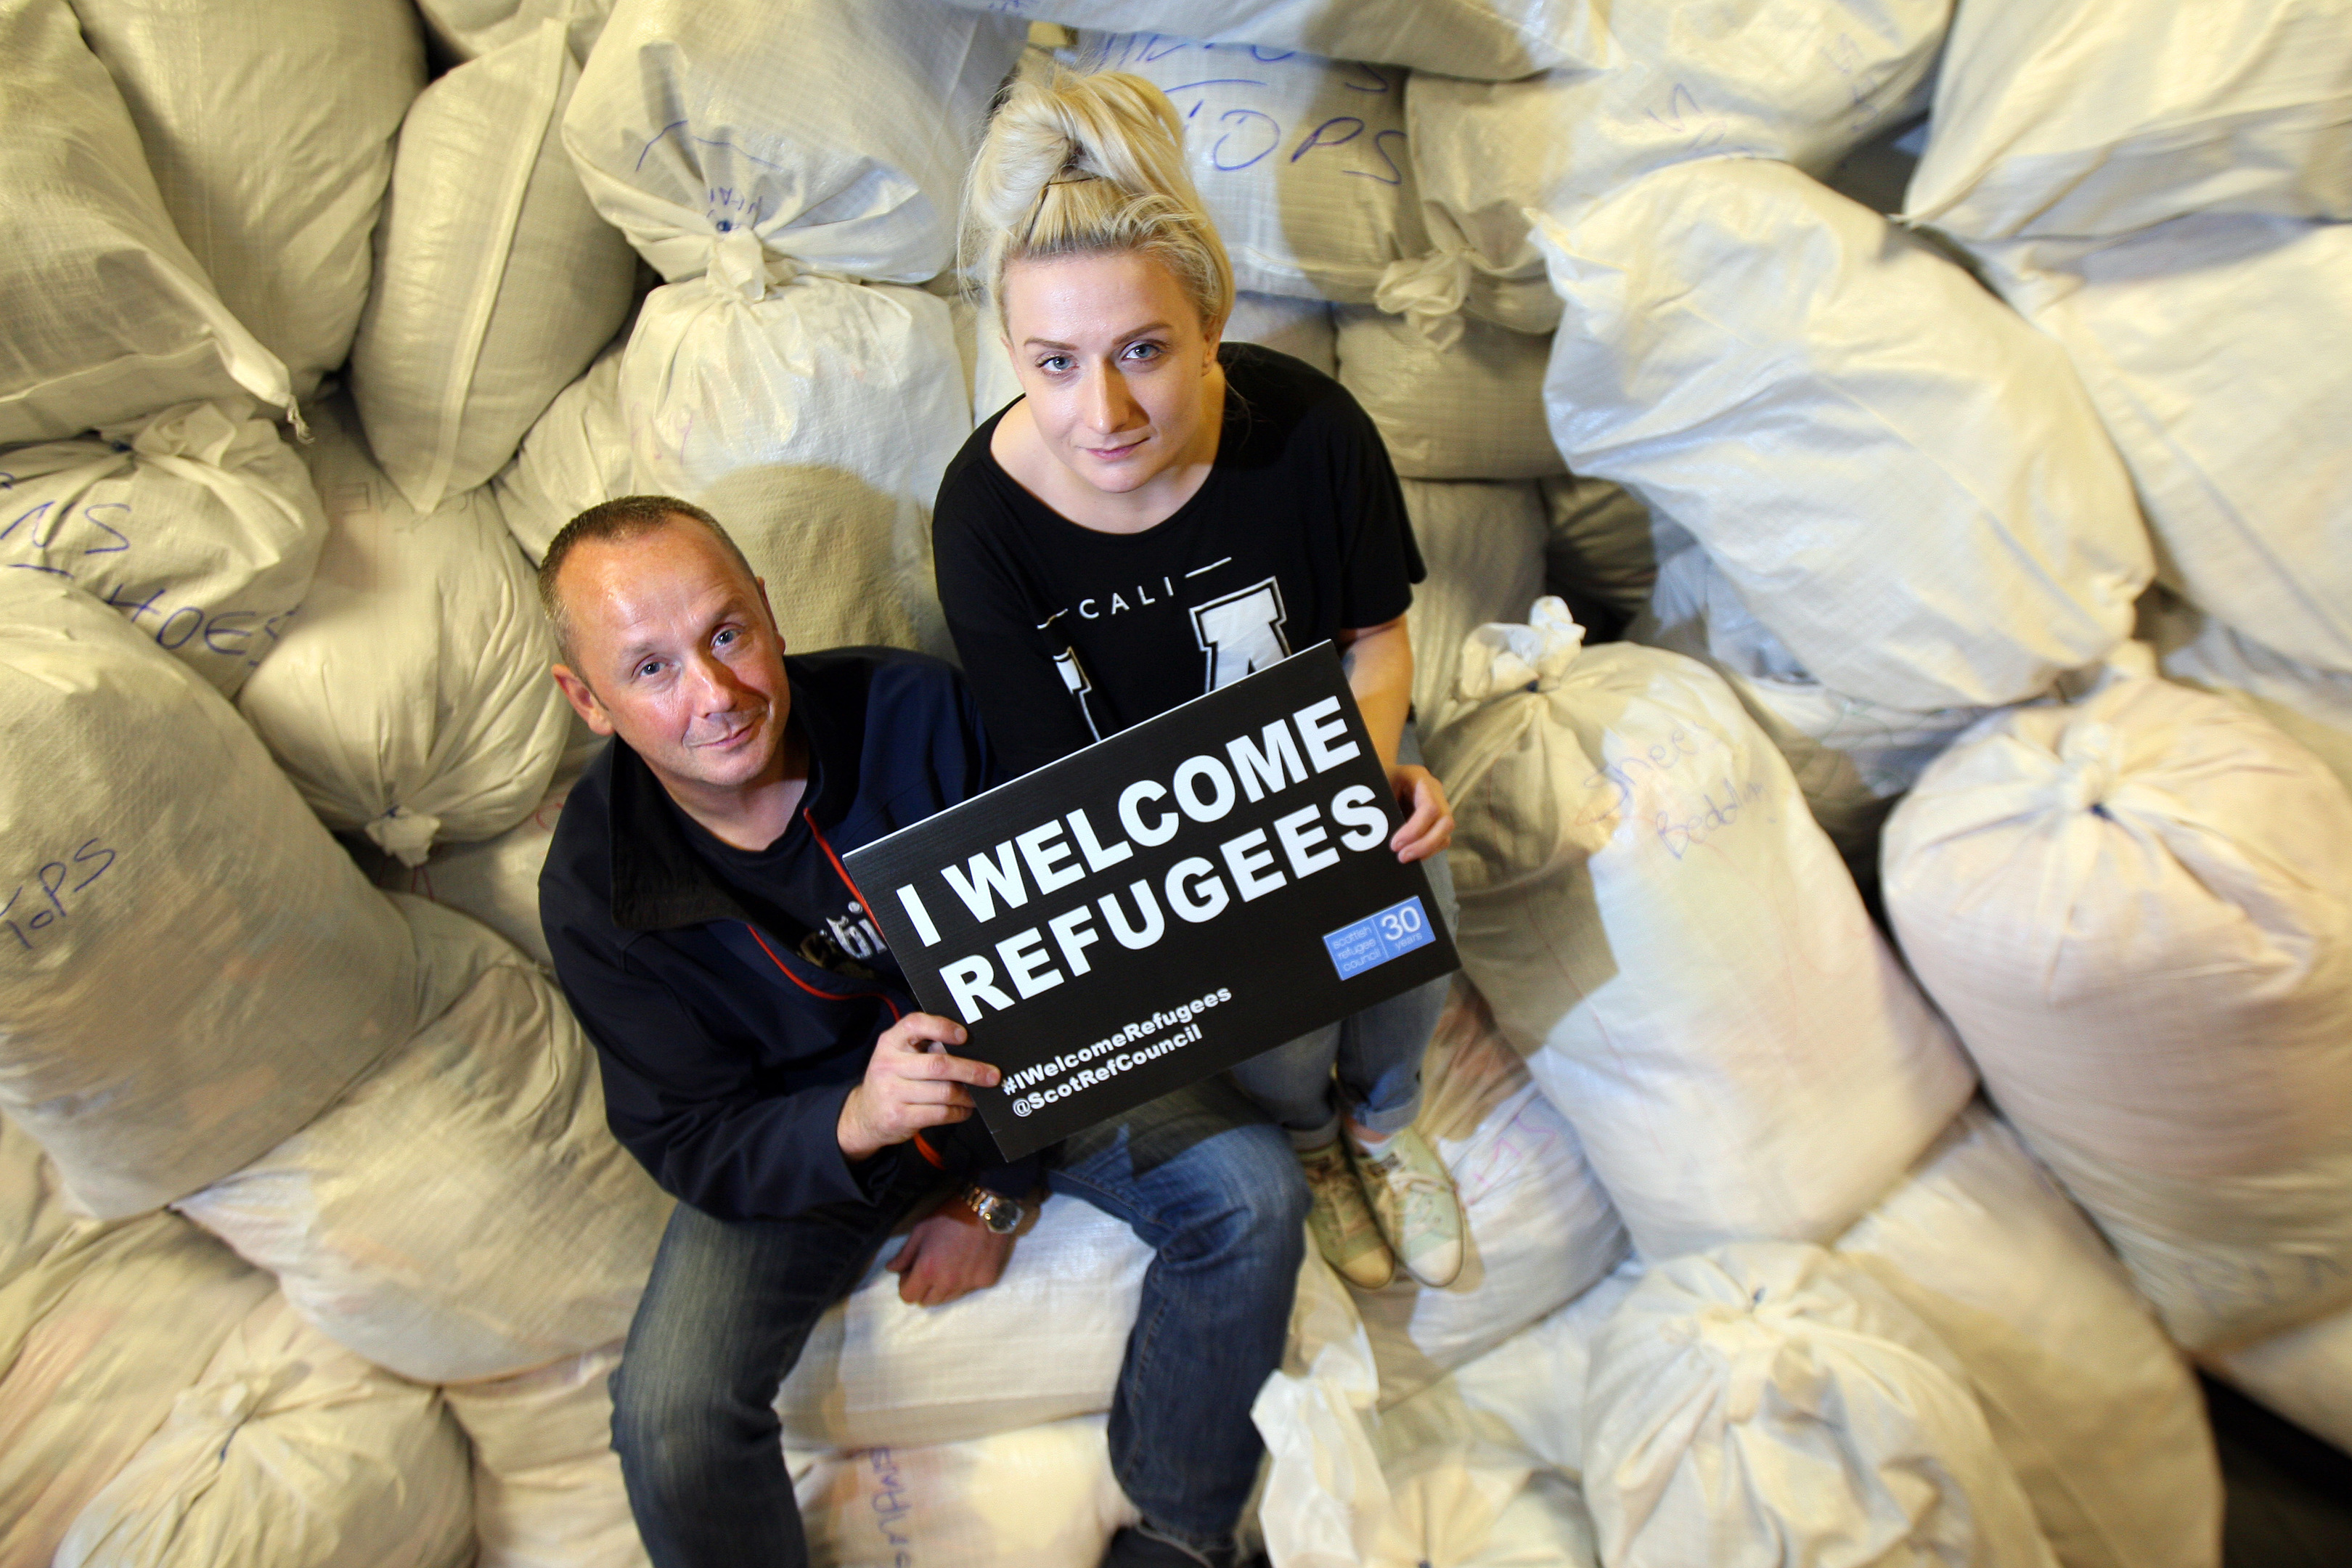 Mike Strachan and fellow volunteer Sammi Craig work hard to welcome refugees to Dundee